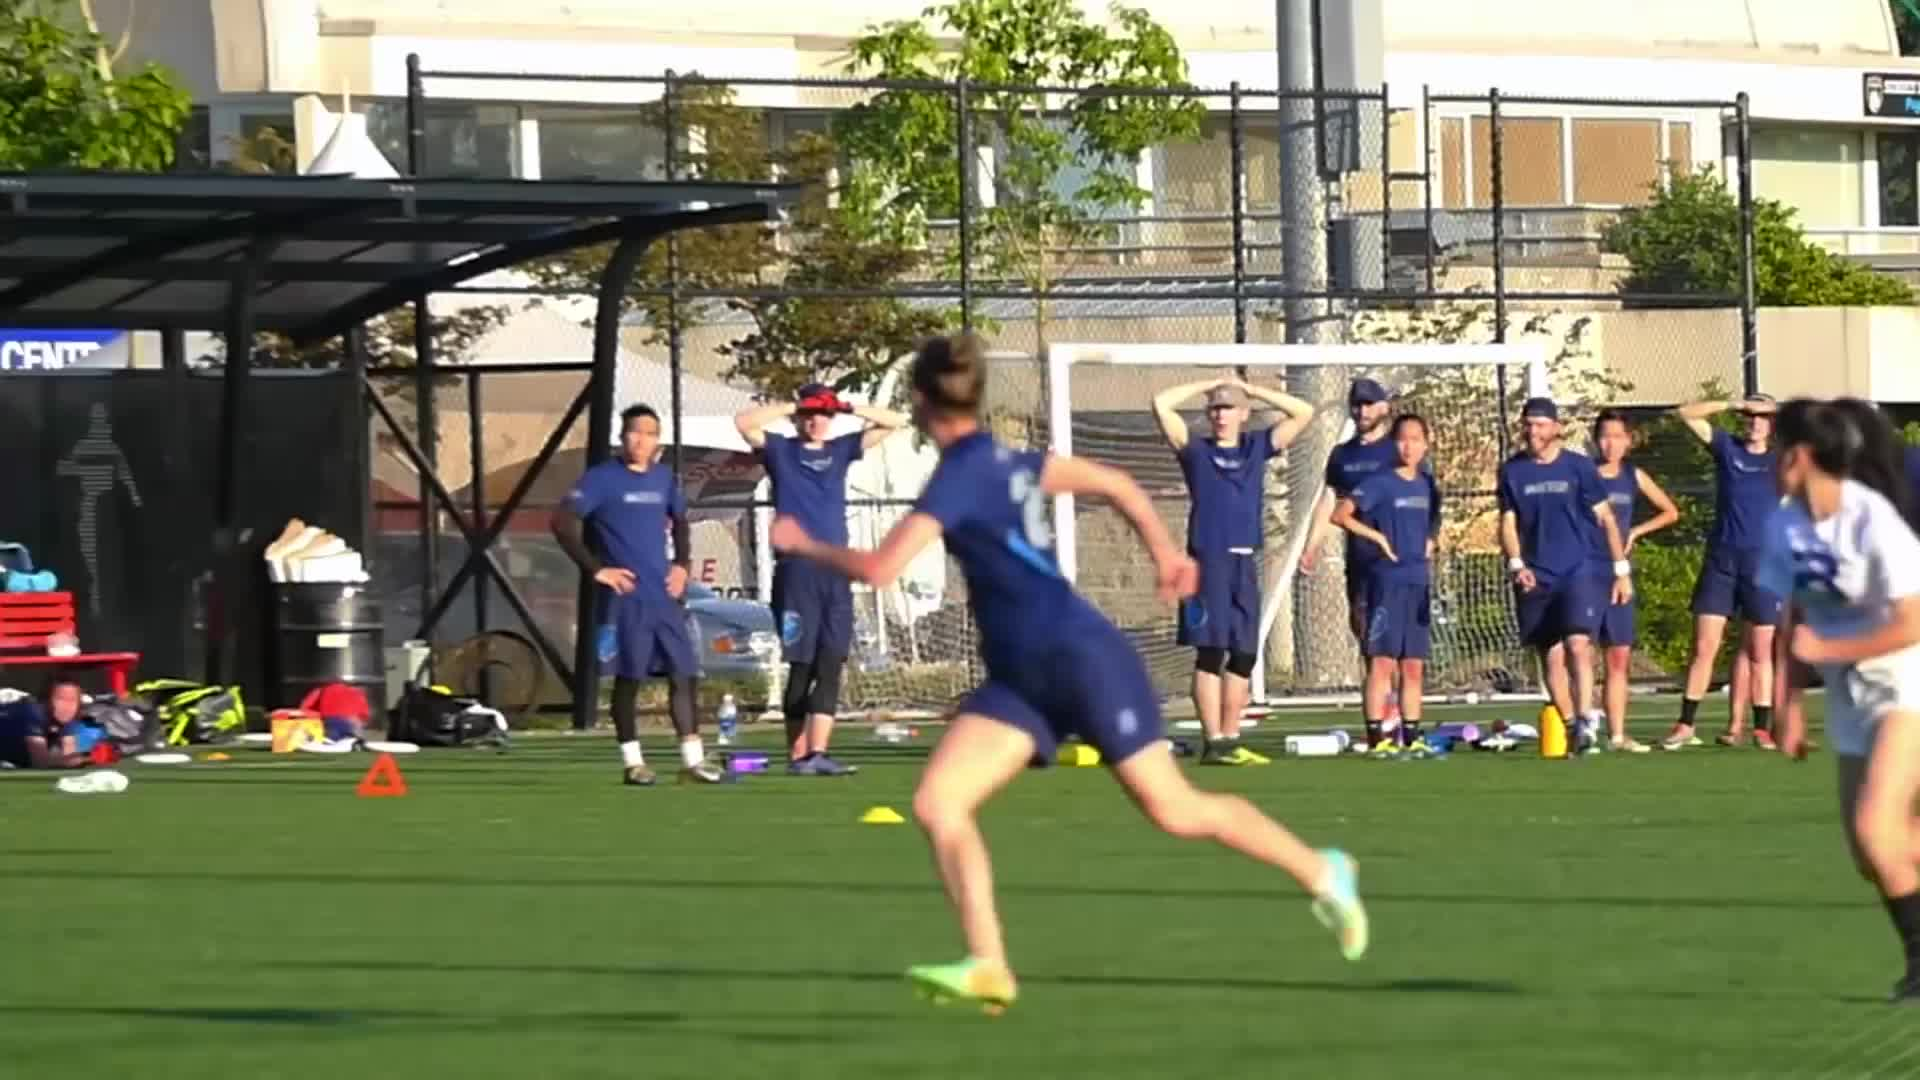 american ultimate disc league, audl, frisbee, ultimate, ultimate frisbee, Alex Fussell Huge Layout Goal GIFs